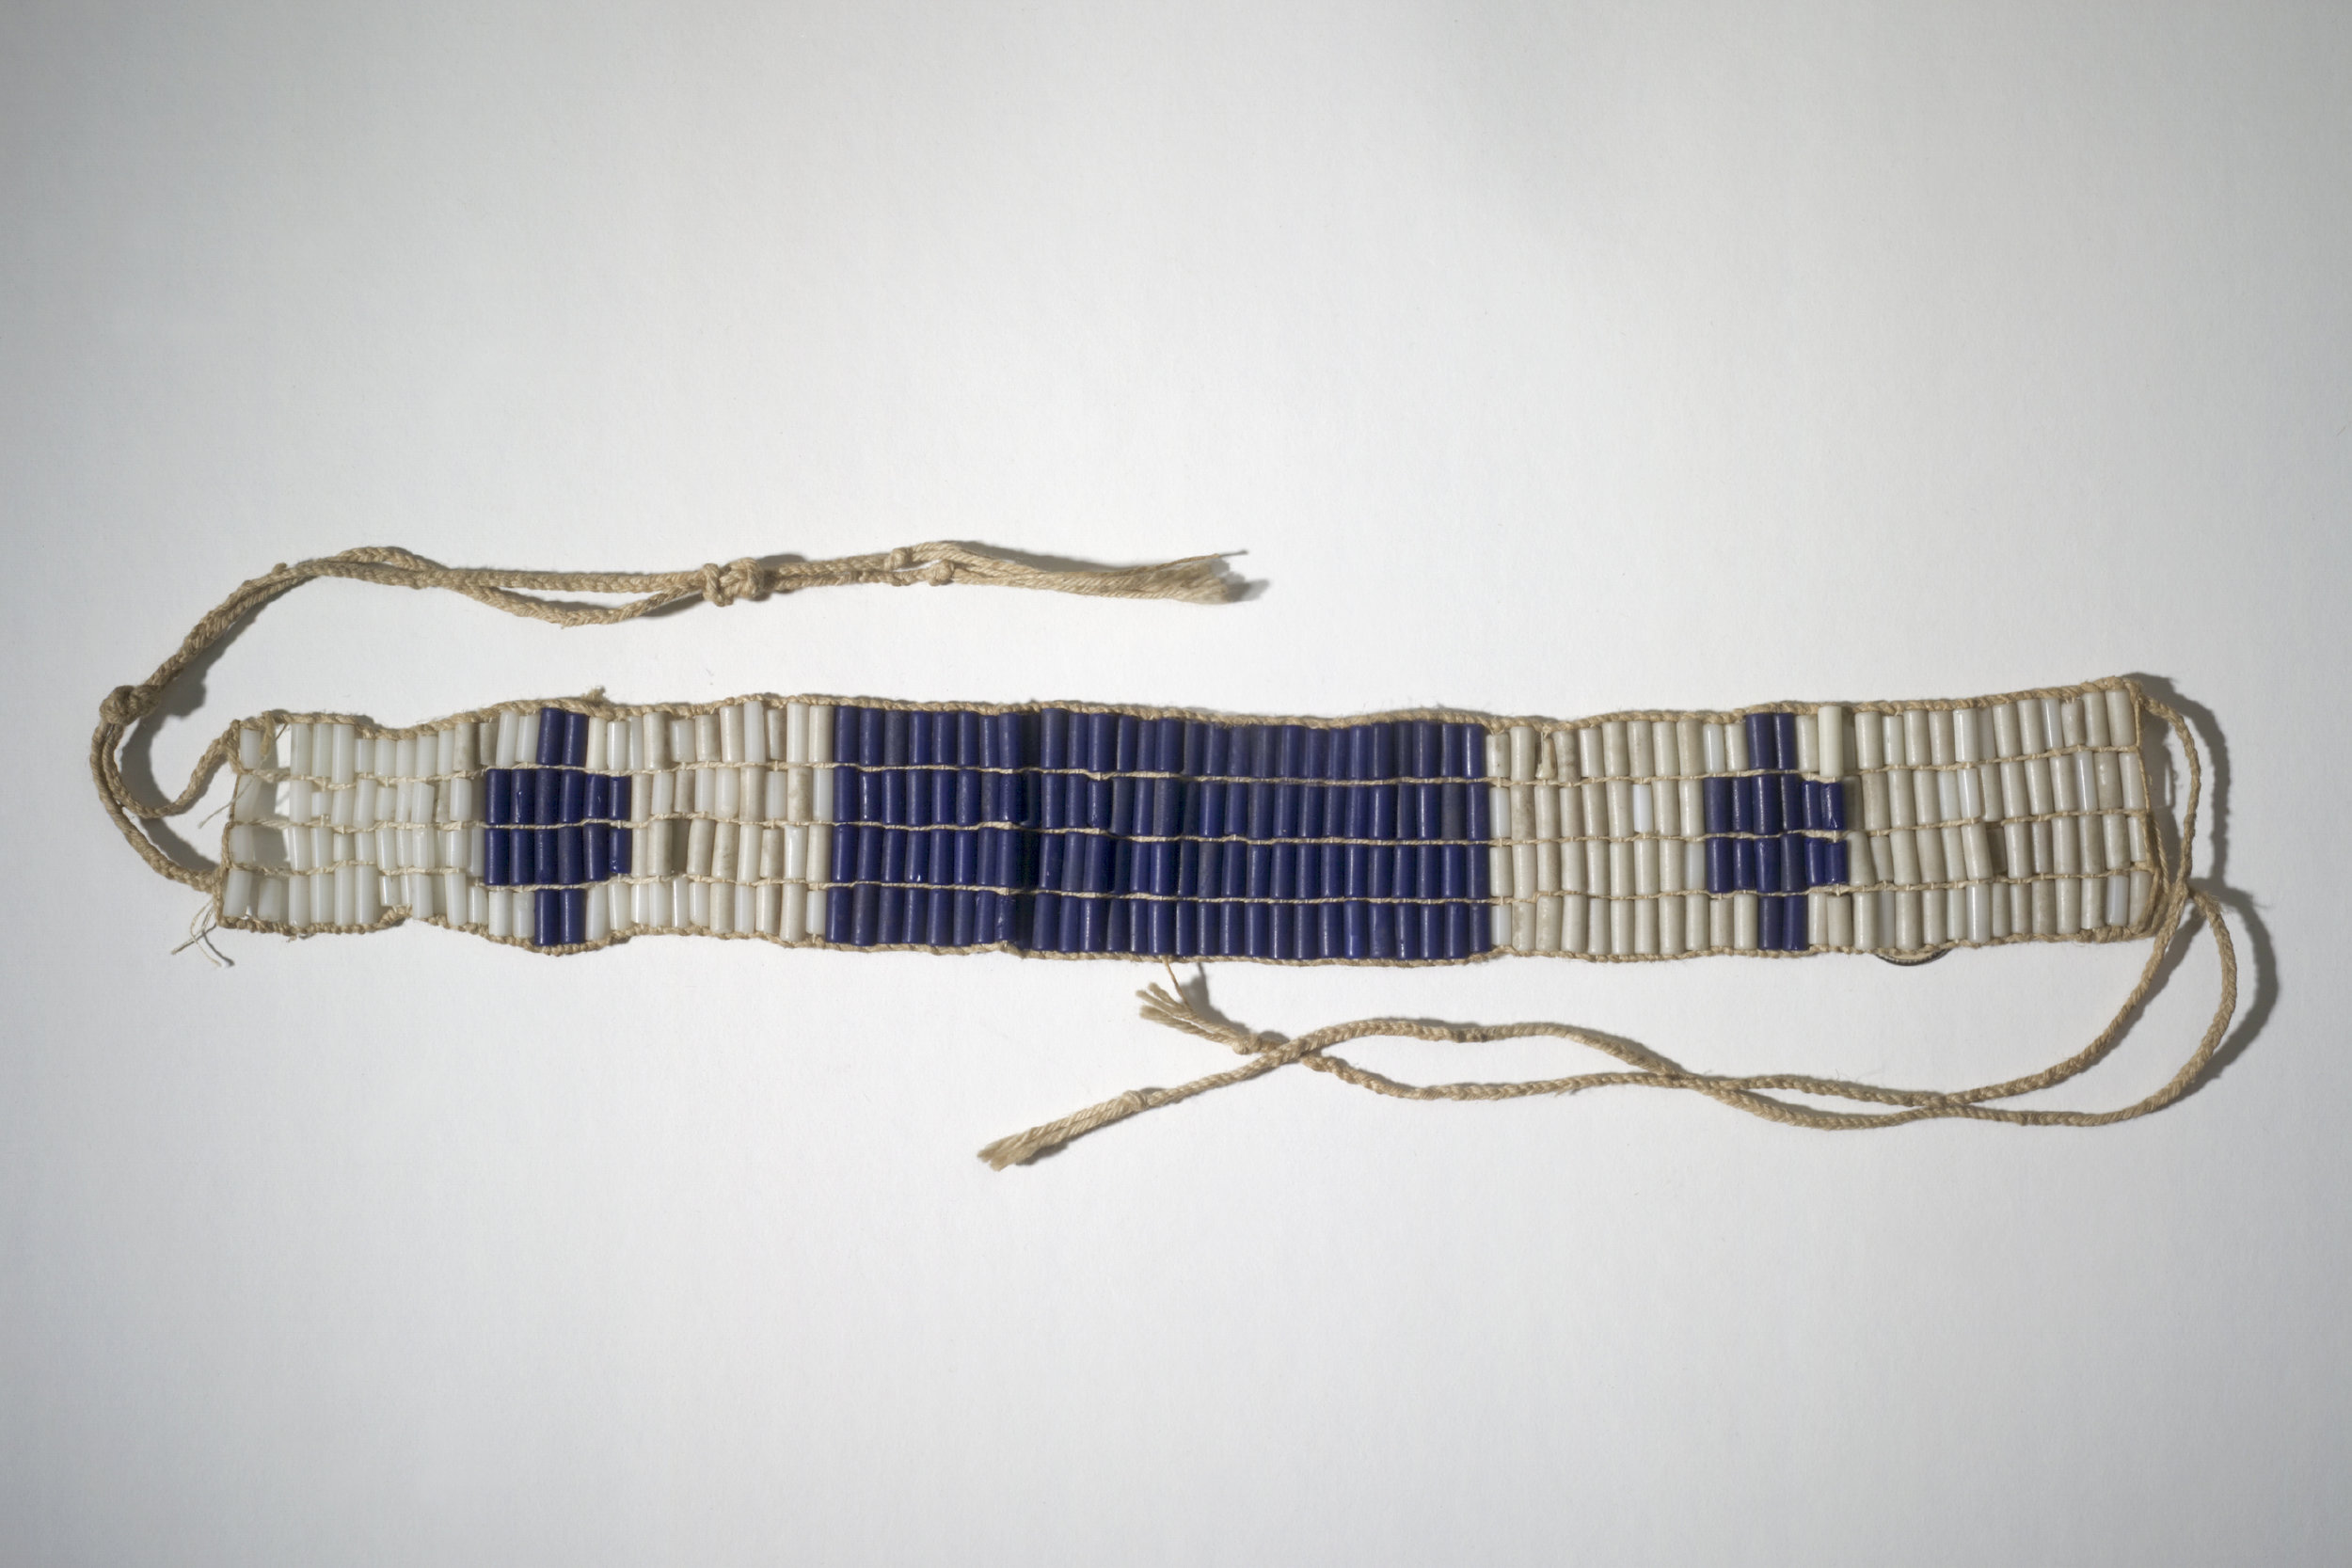 Wampum Reproduction AMNH 501_9952.jpg